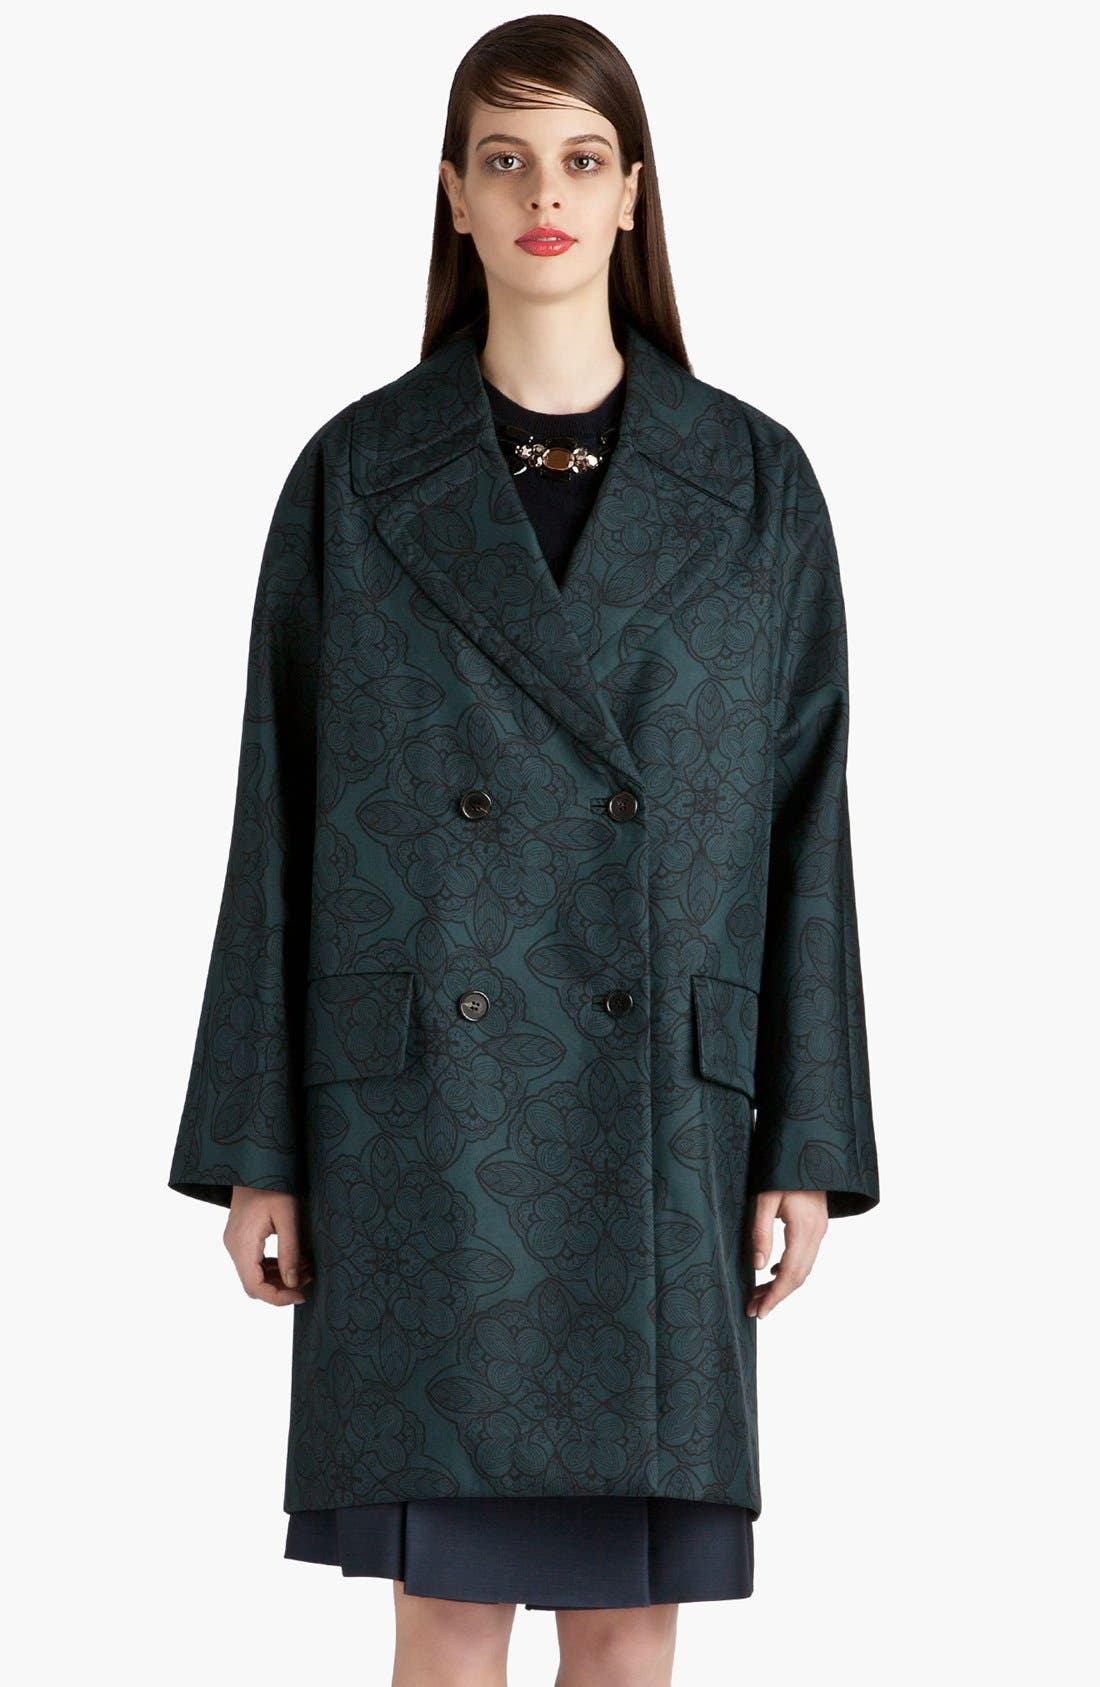 Alternate Image 1 Selected - Marni Snowflower Print Bonded Coat